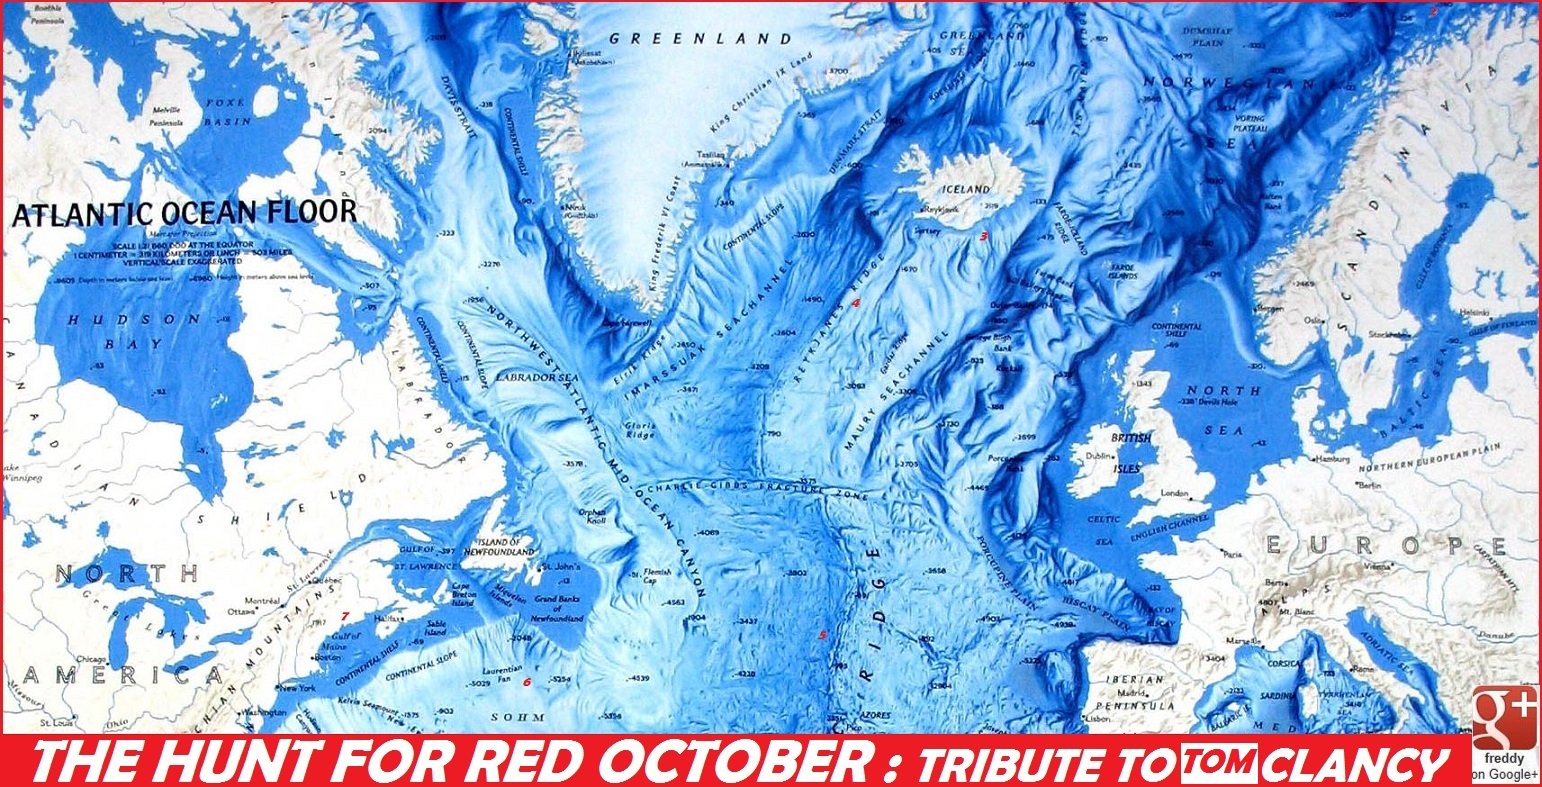 THE HUNT FOR RED OCTOBER PETIT-DIEULOIS